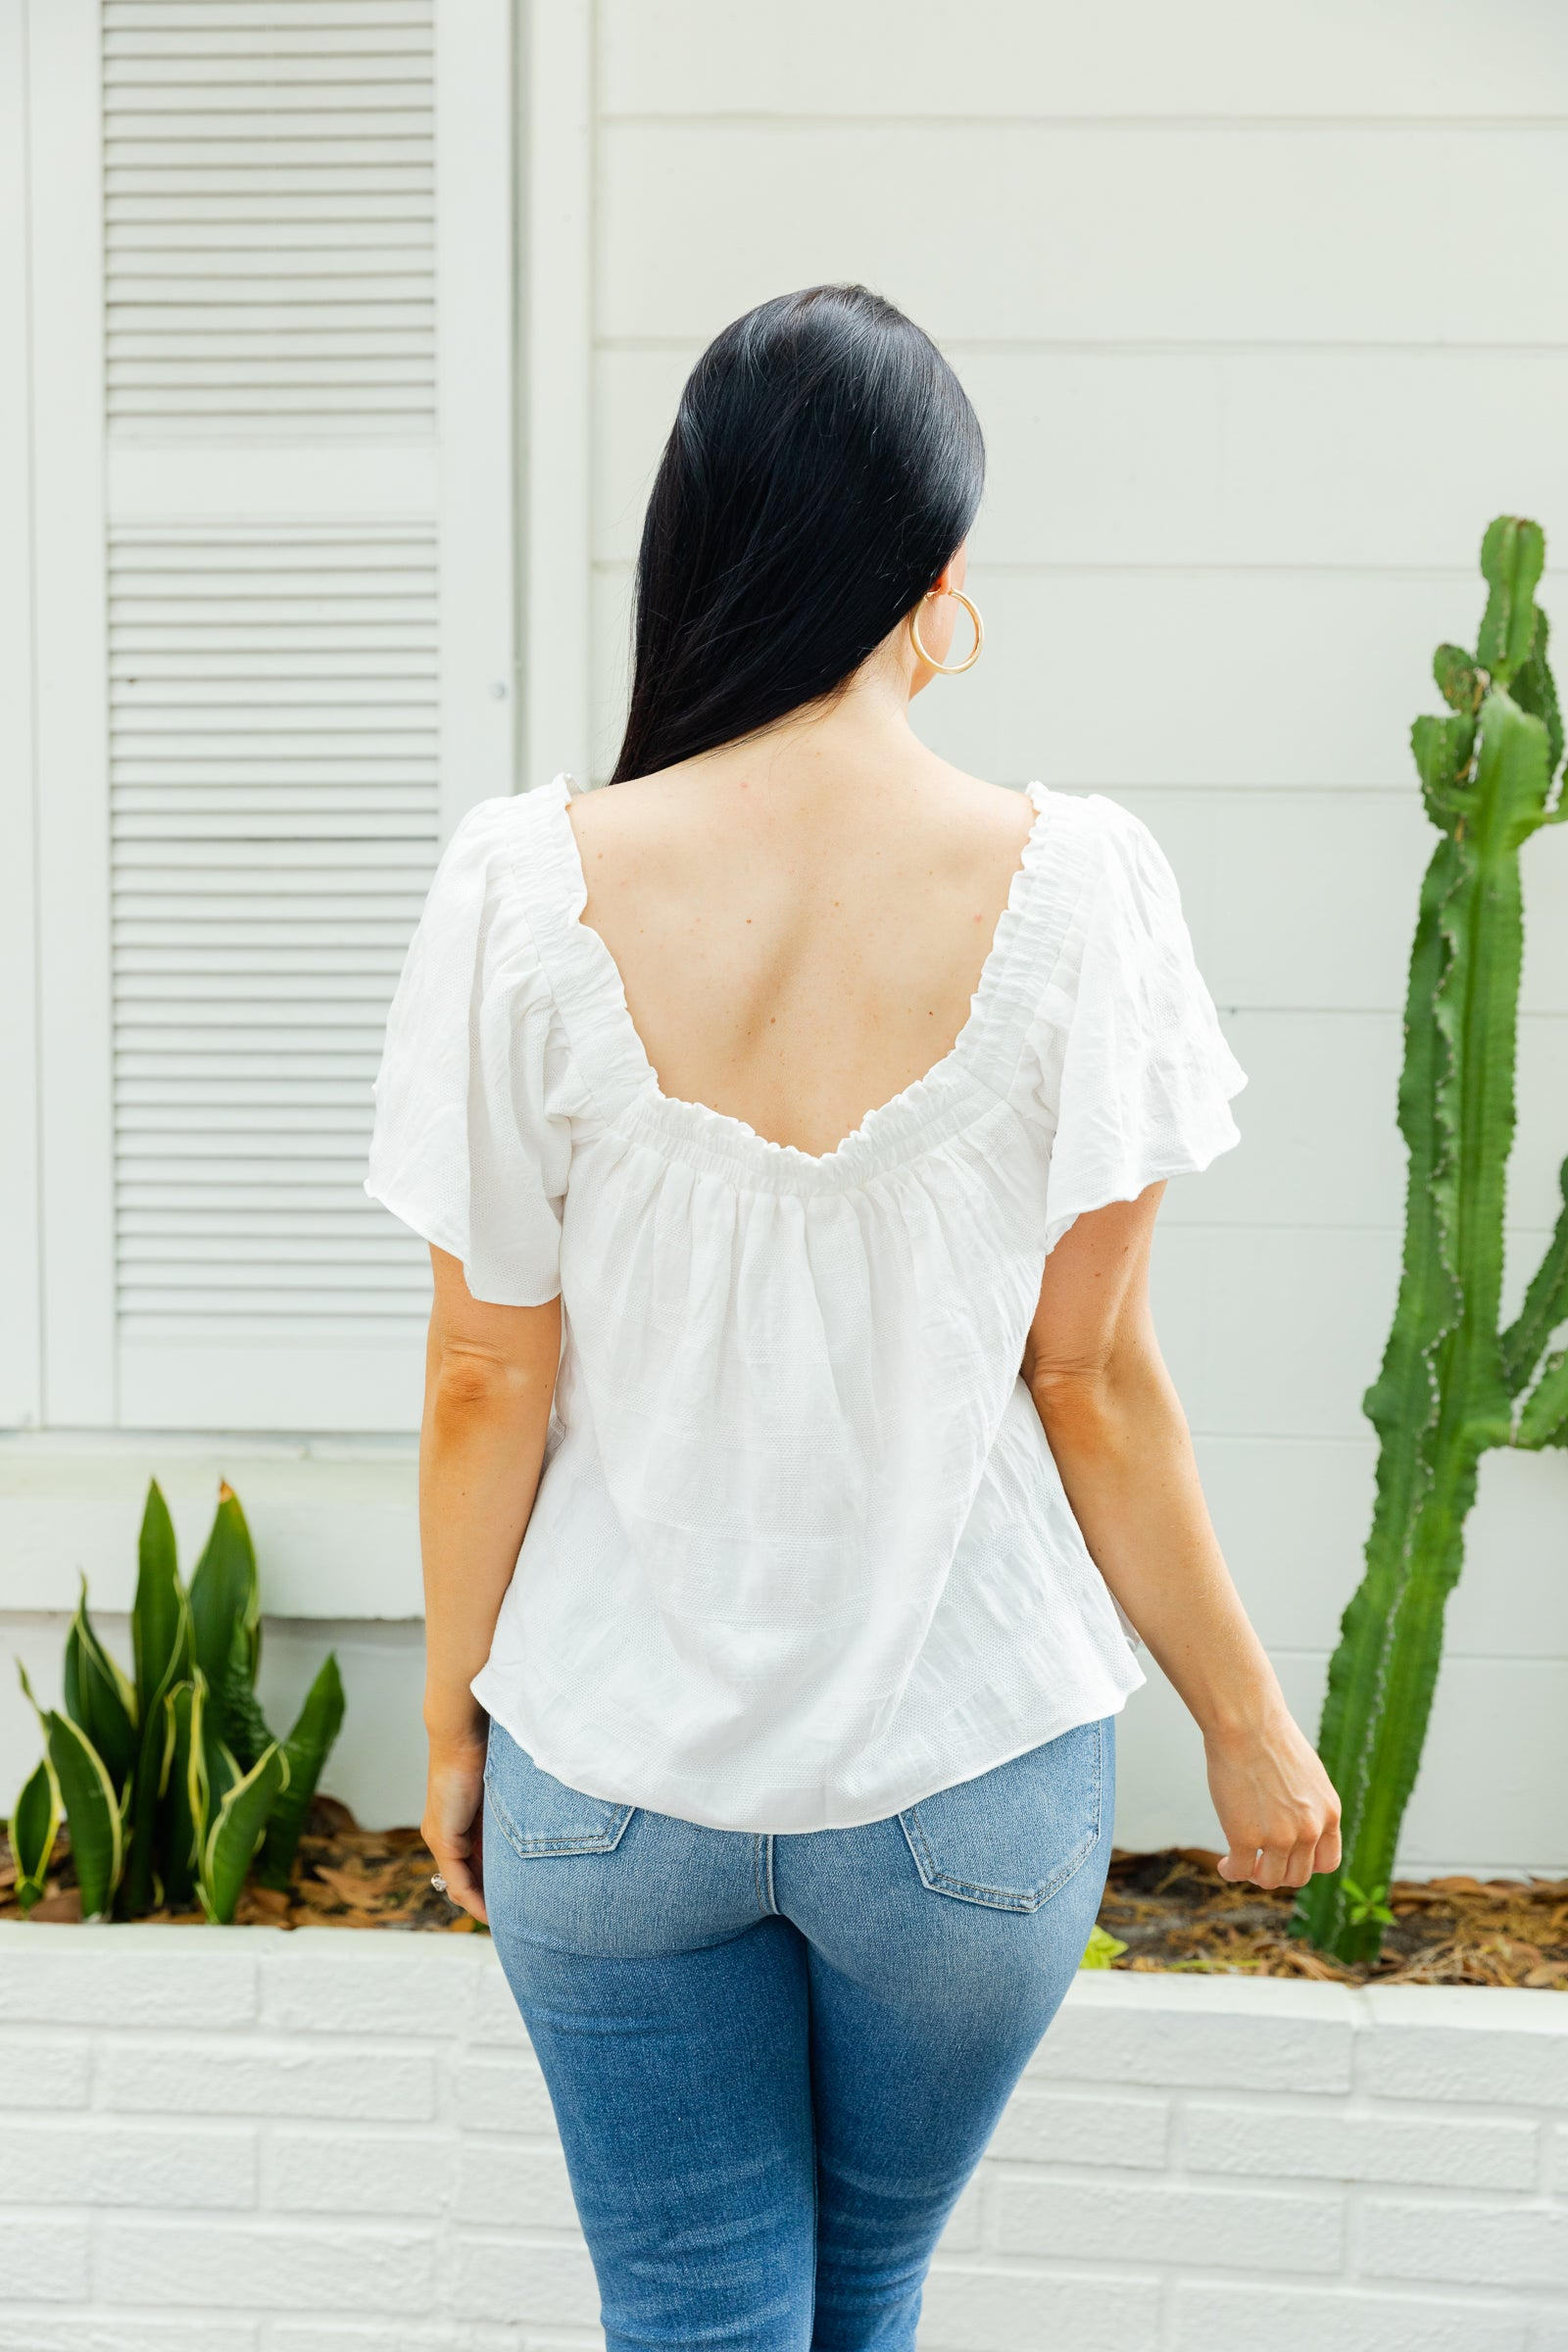 This lightweight top has short loose sleeves that attach to an off-the-shoulder and straight ruffled neckline on a flowy and oversized bodice silhouette.